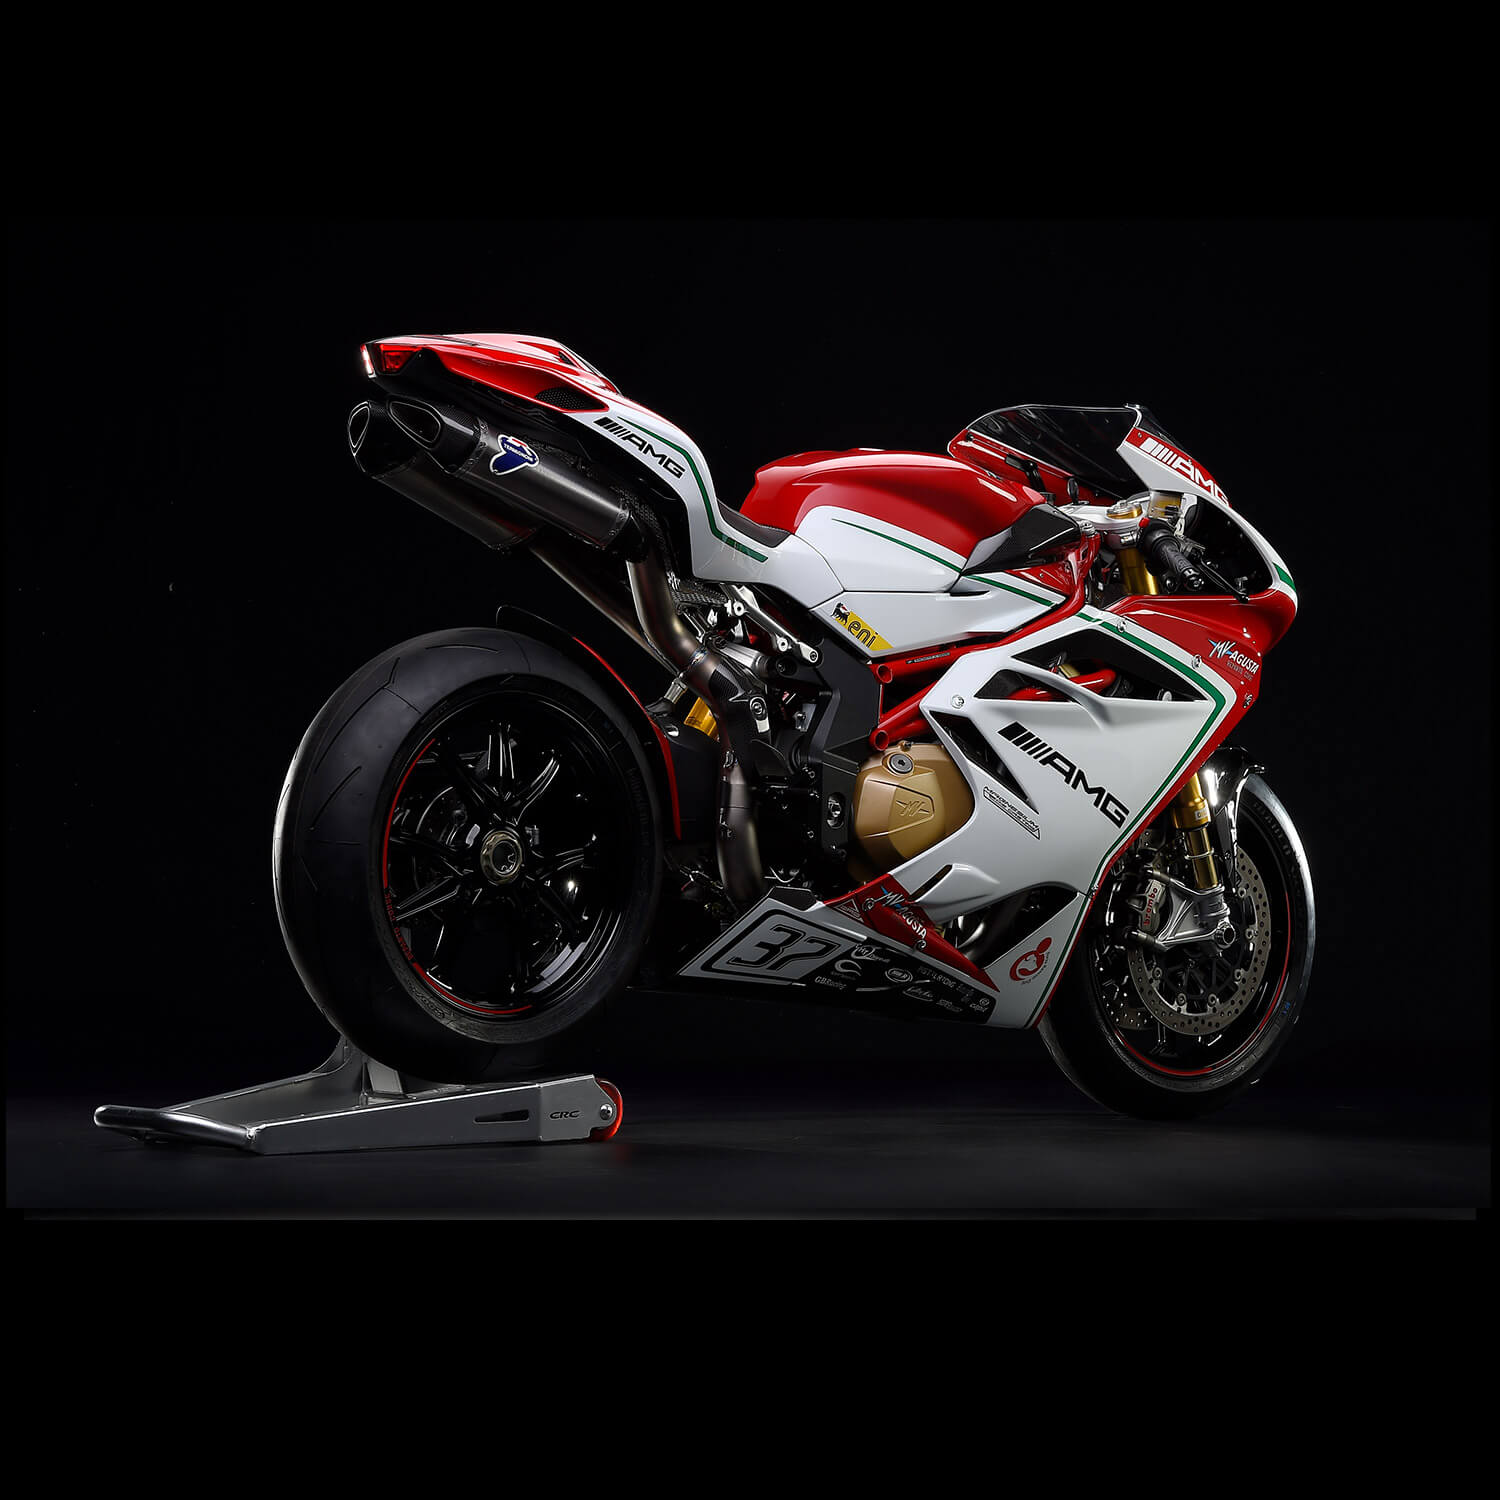 mv agusta f4 rc city moto benelux. Black Bedroom Furniture Sets. Home Design Ideas